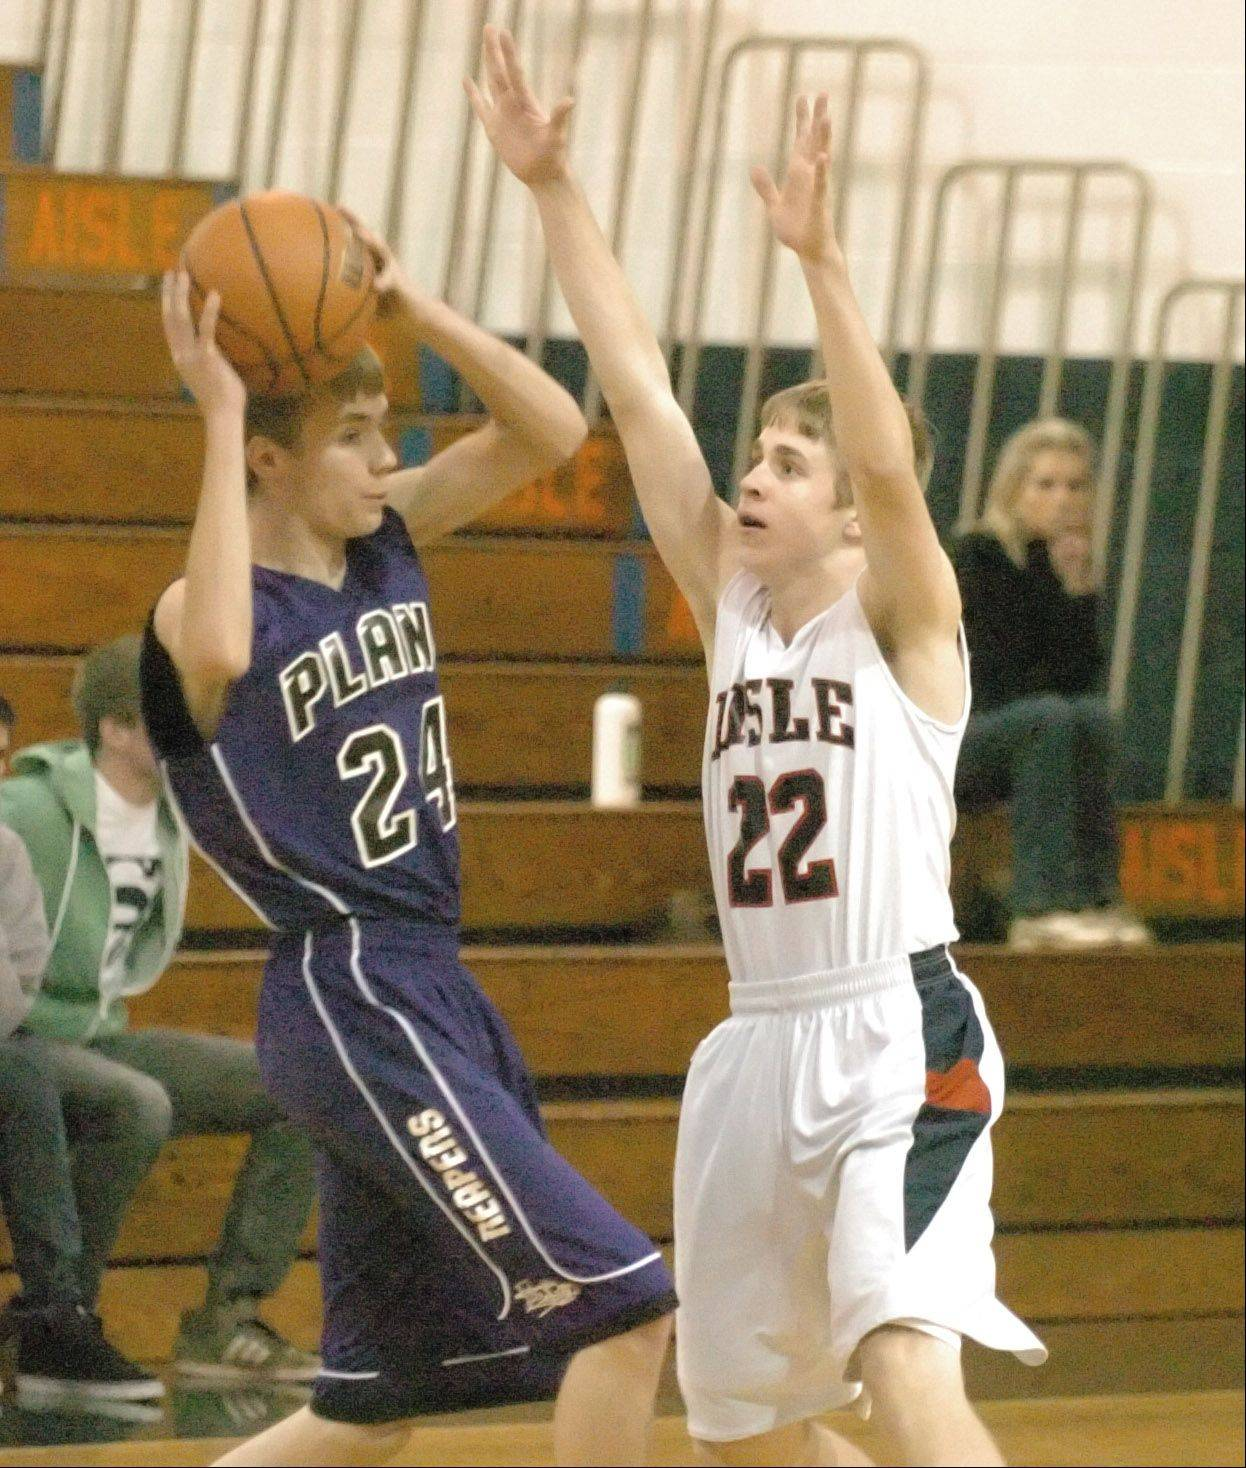 Craig Thom of Plano looks to pass over Connor Bielat of Lisle.